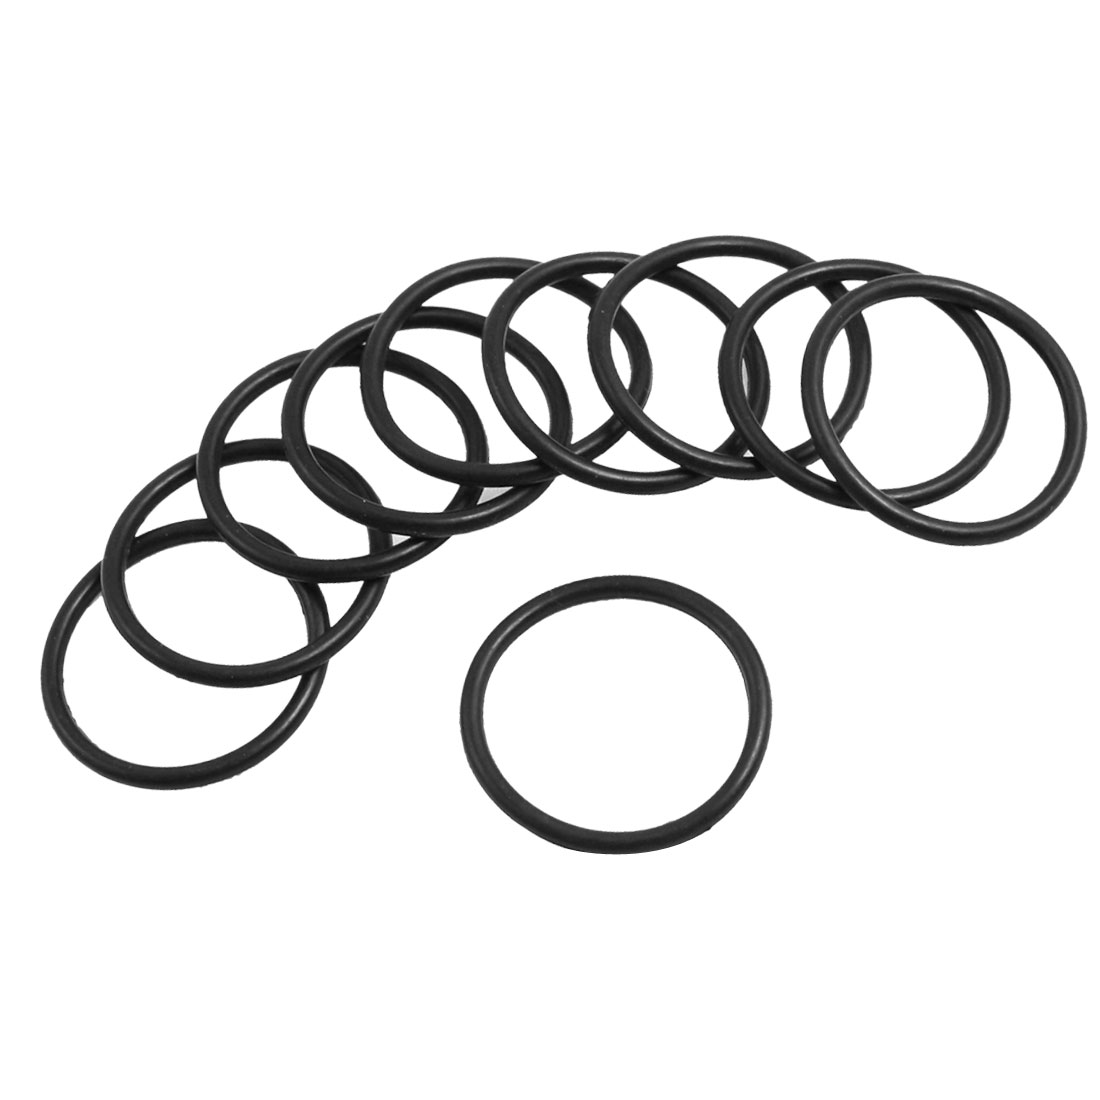 2mm x 25mm Black Nitrile Rubber Sealing O Ring Seal Washer Grommets 10 Pcs